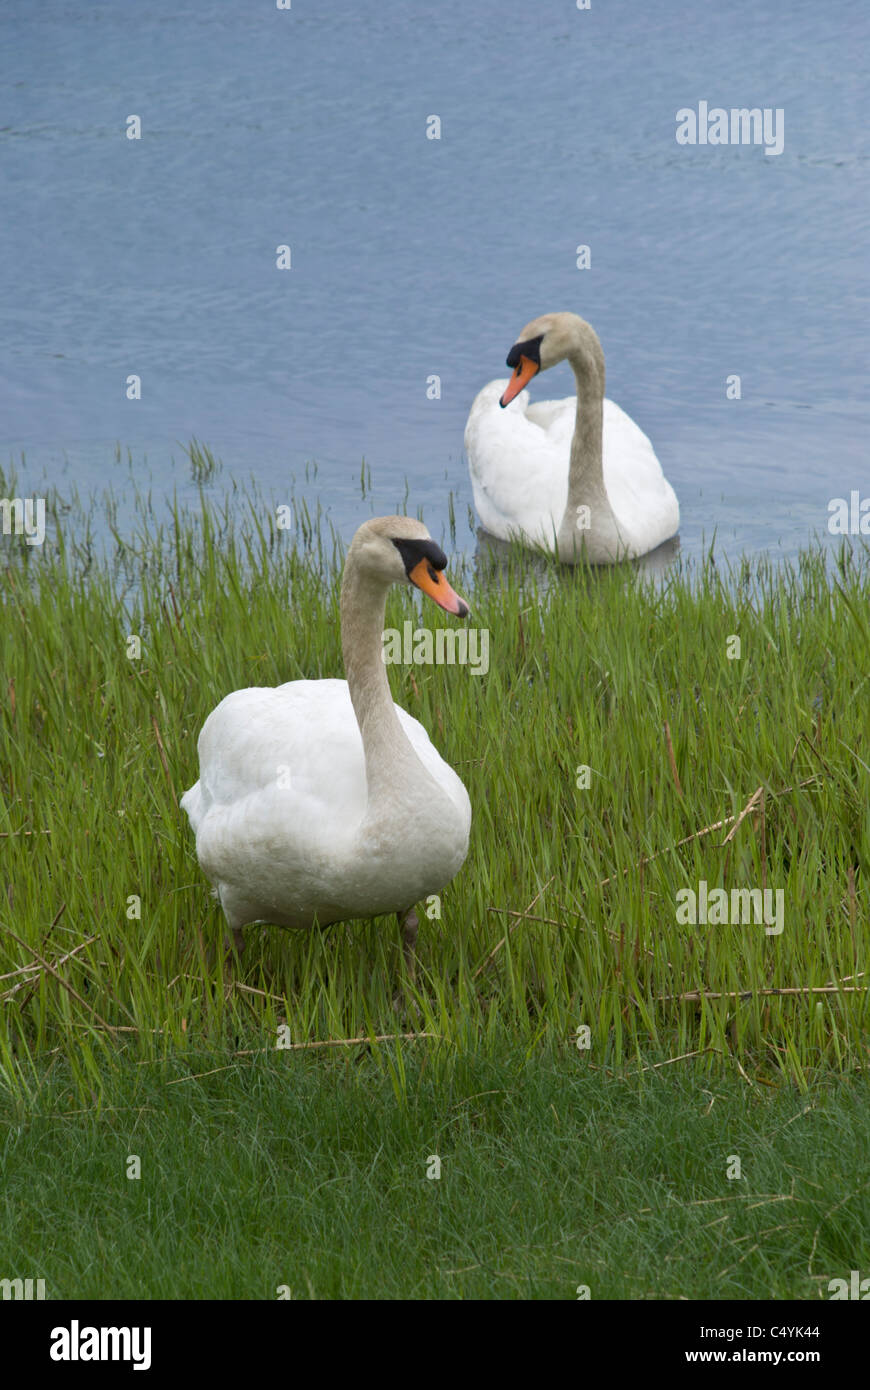 Photographing swans creates curiosity in these water foul as they come in for a closer look. - Stock Image